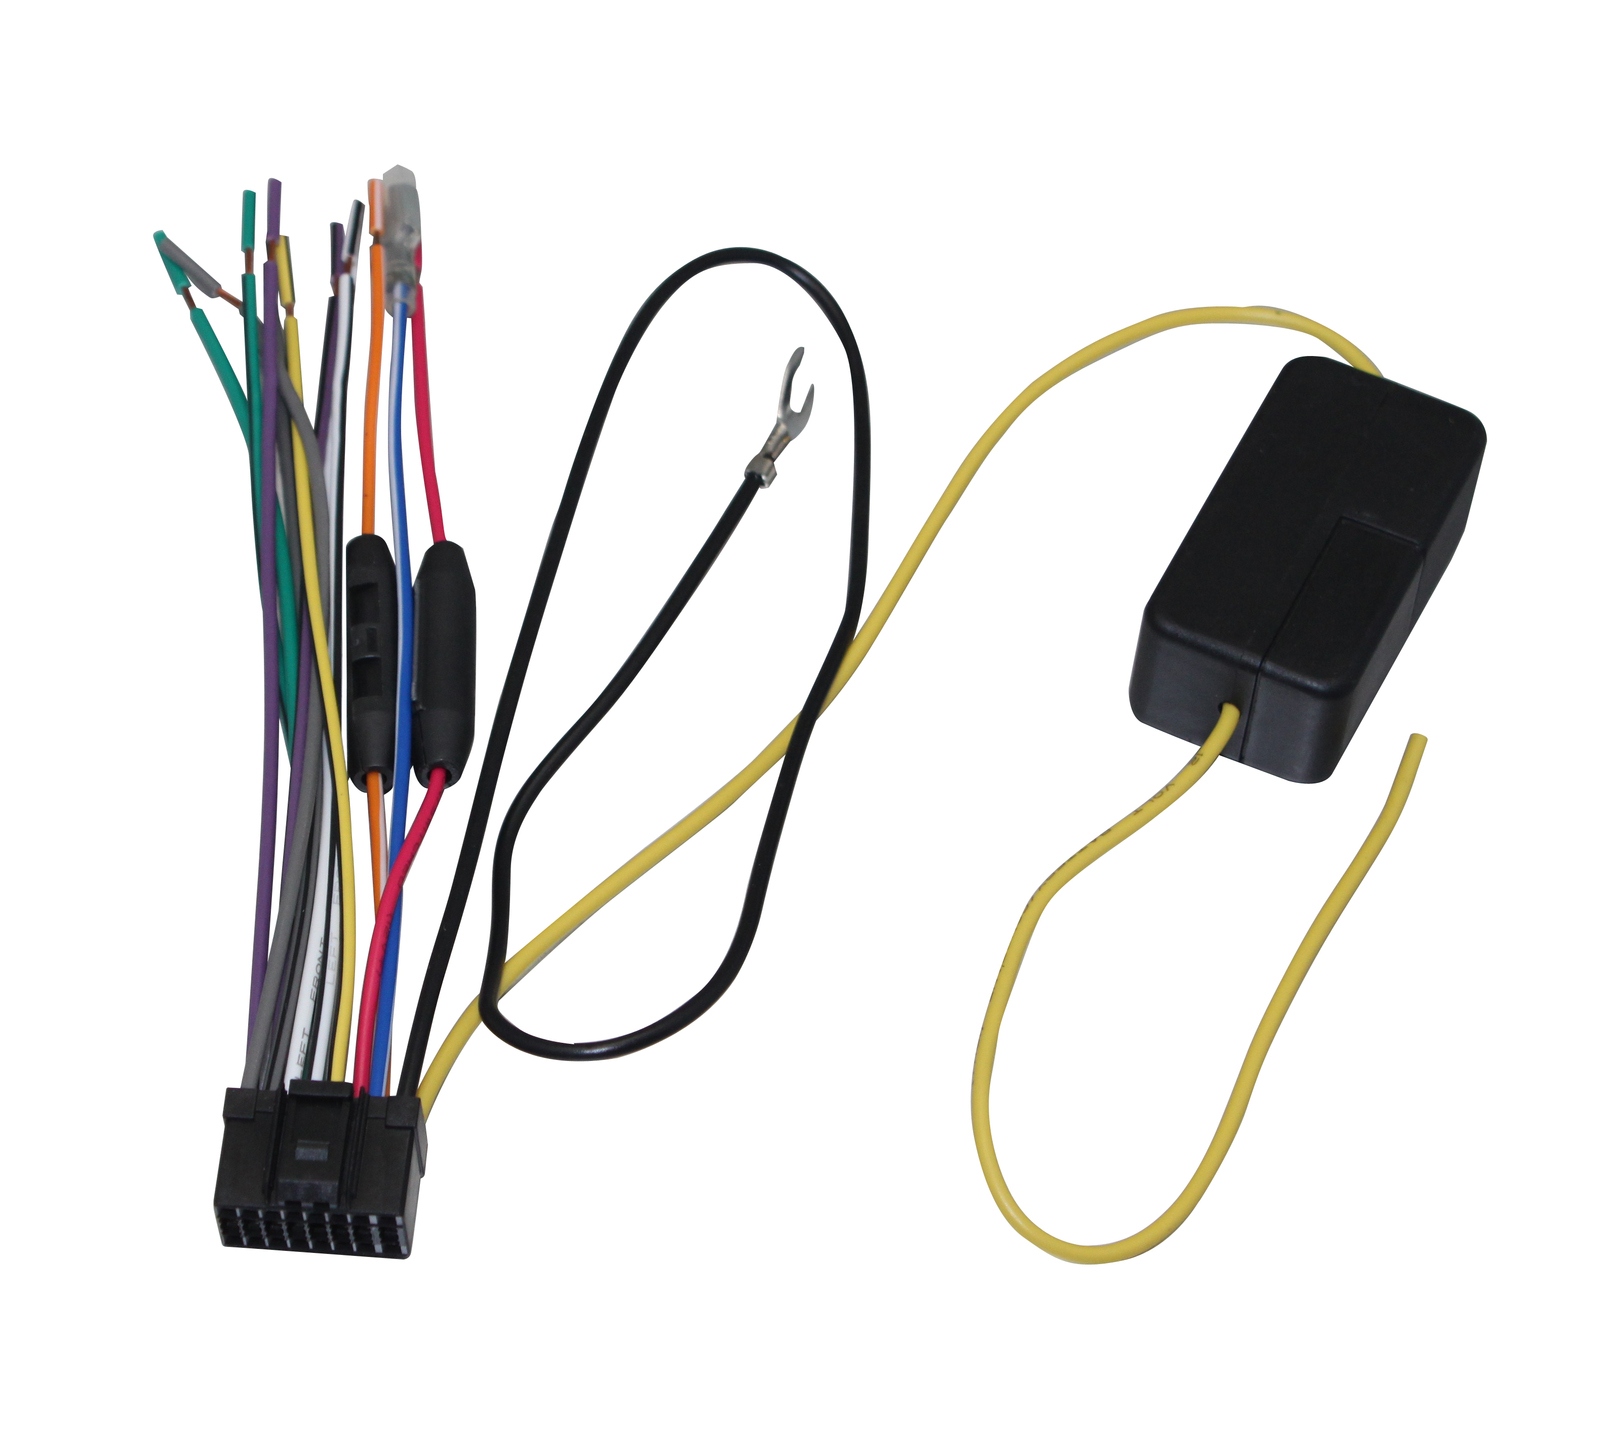 pioneer p1400dvd wiring harness aps wire harness for pioneer deh p8500 mp and 47 similar items  wire harness for pioneer deh p8500 mp